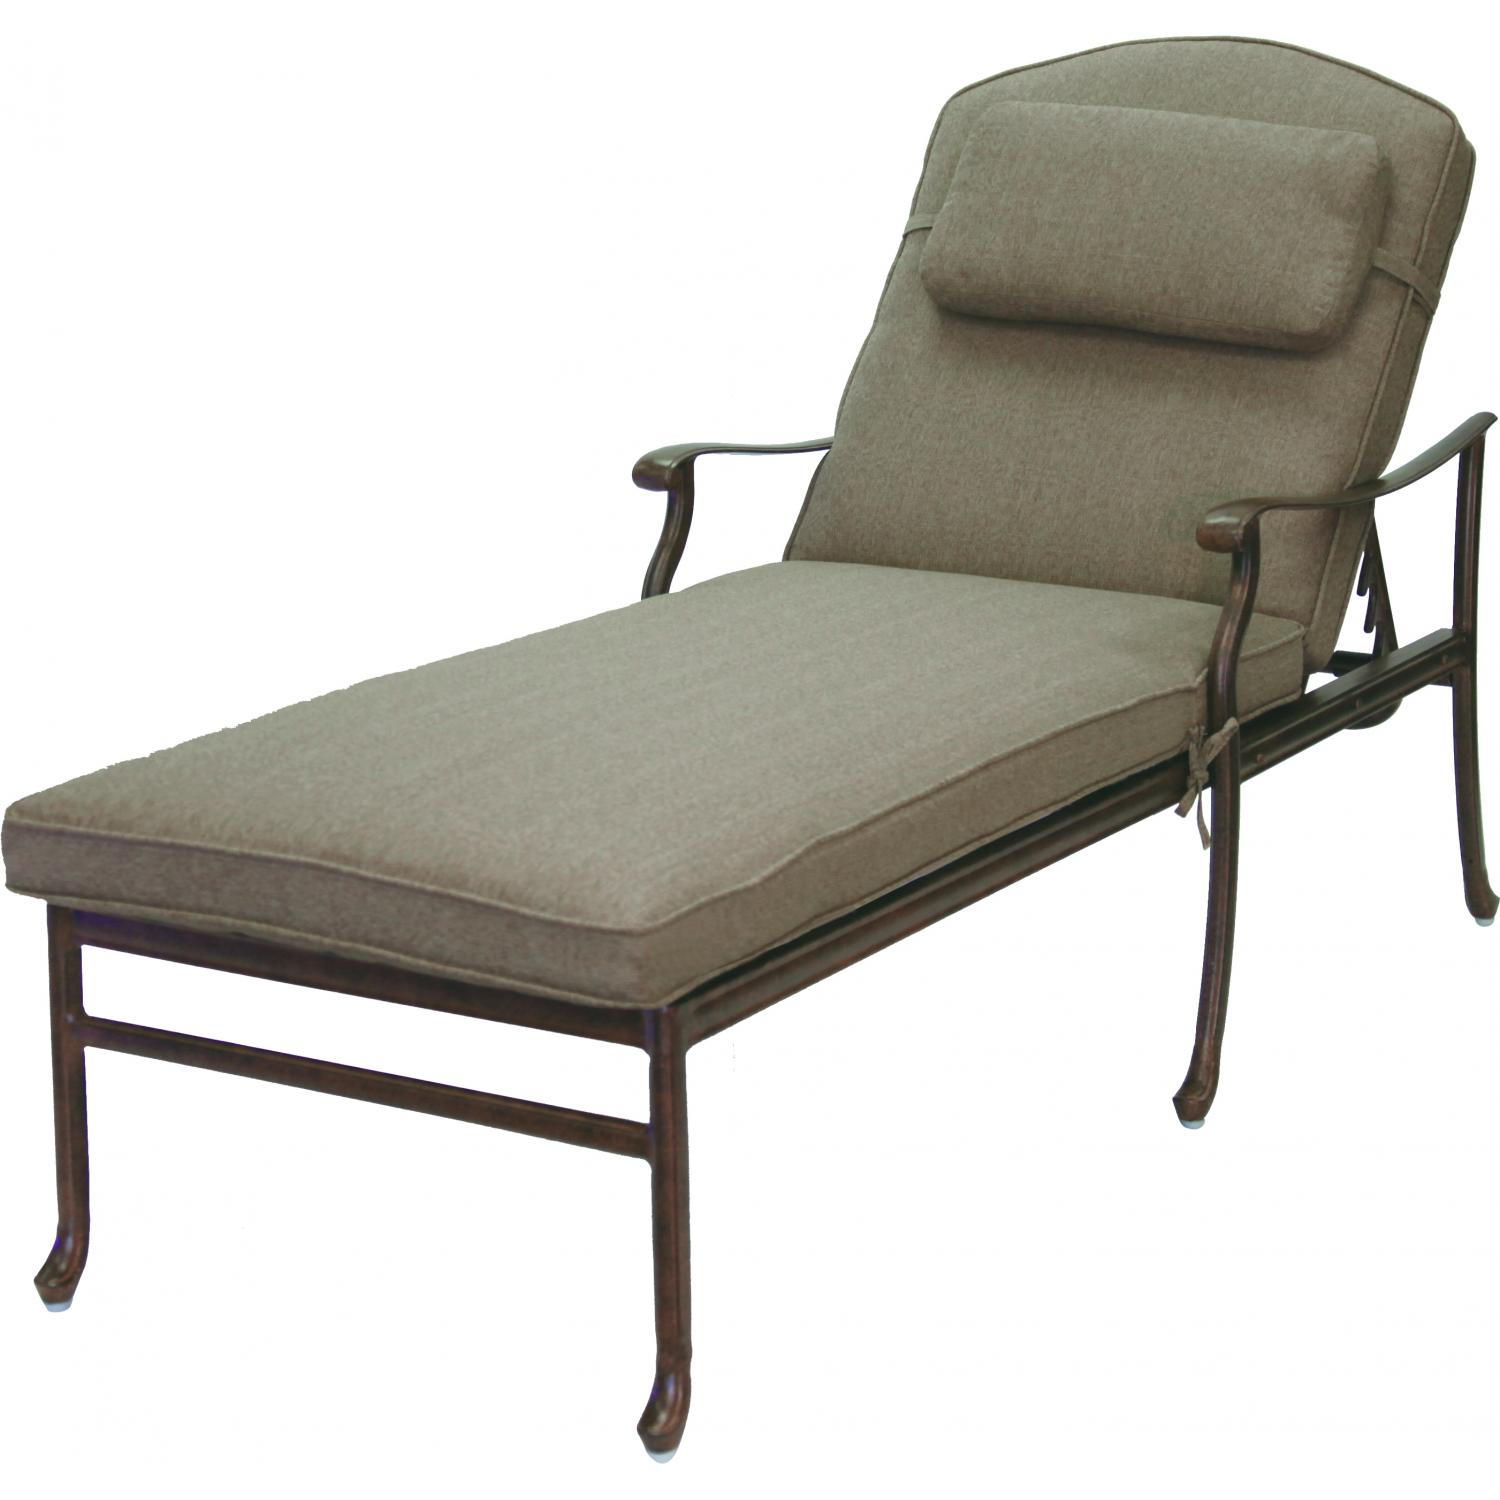 Darlee sedona cast aluminum patio chaise lounge antique for Antique chaise longe